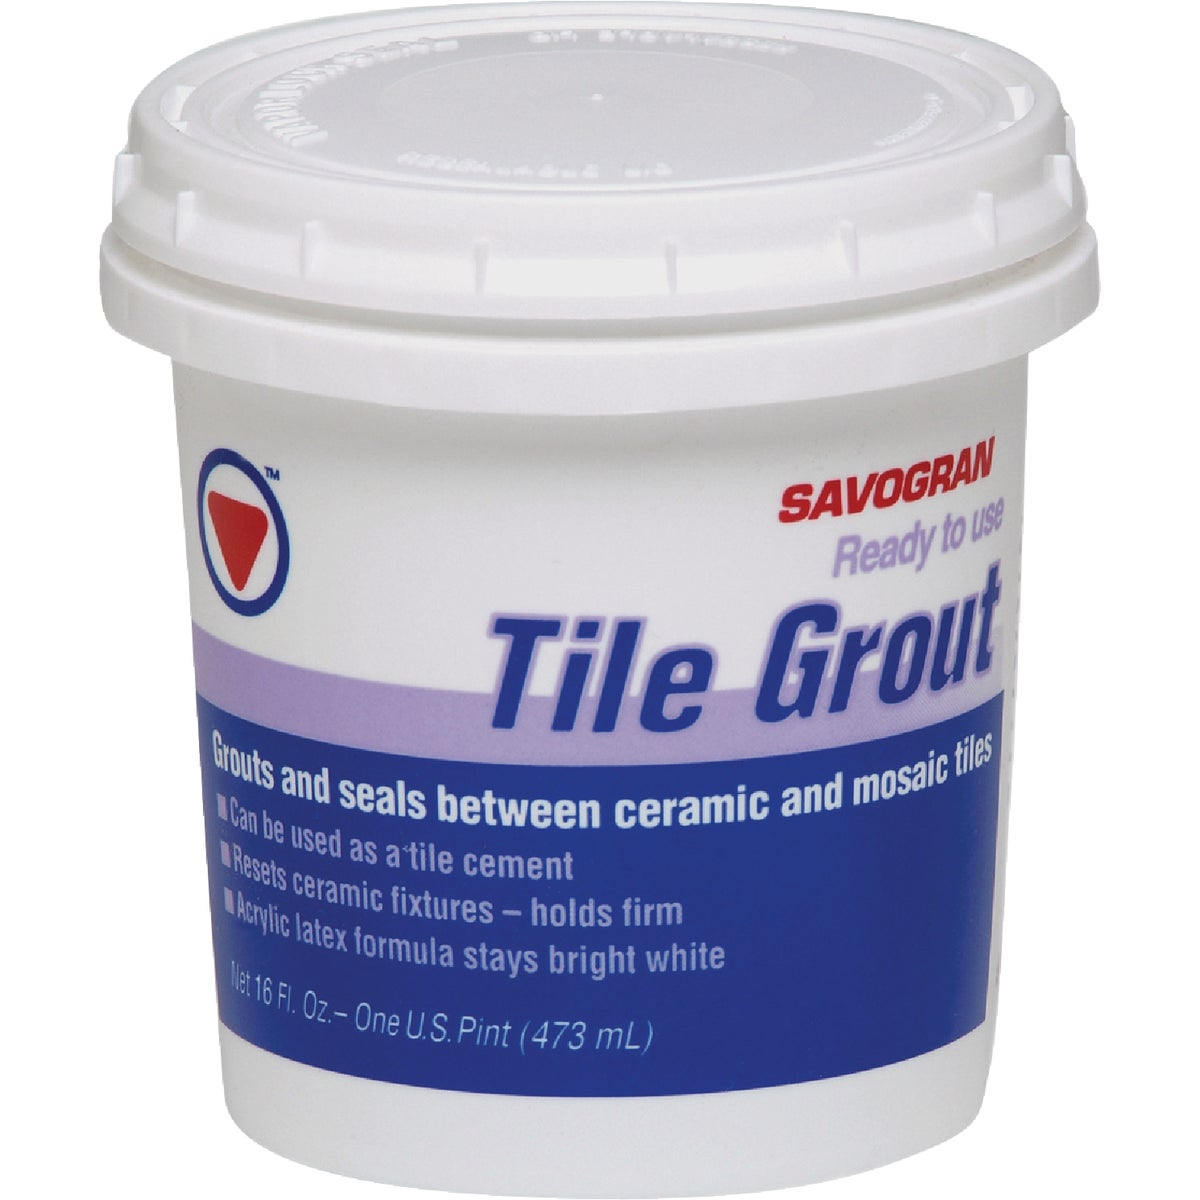 PINT PREMIXED TILE GROUT